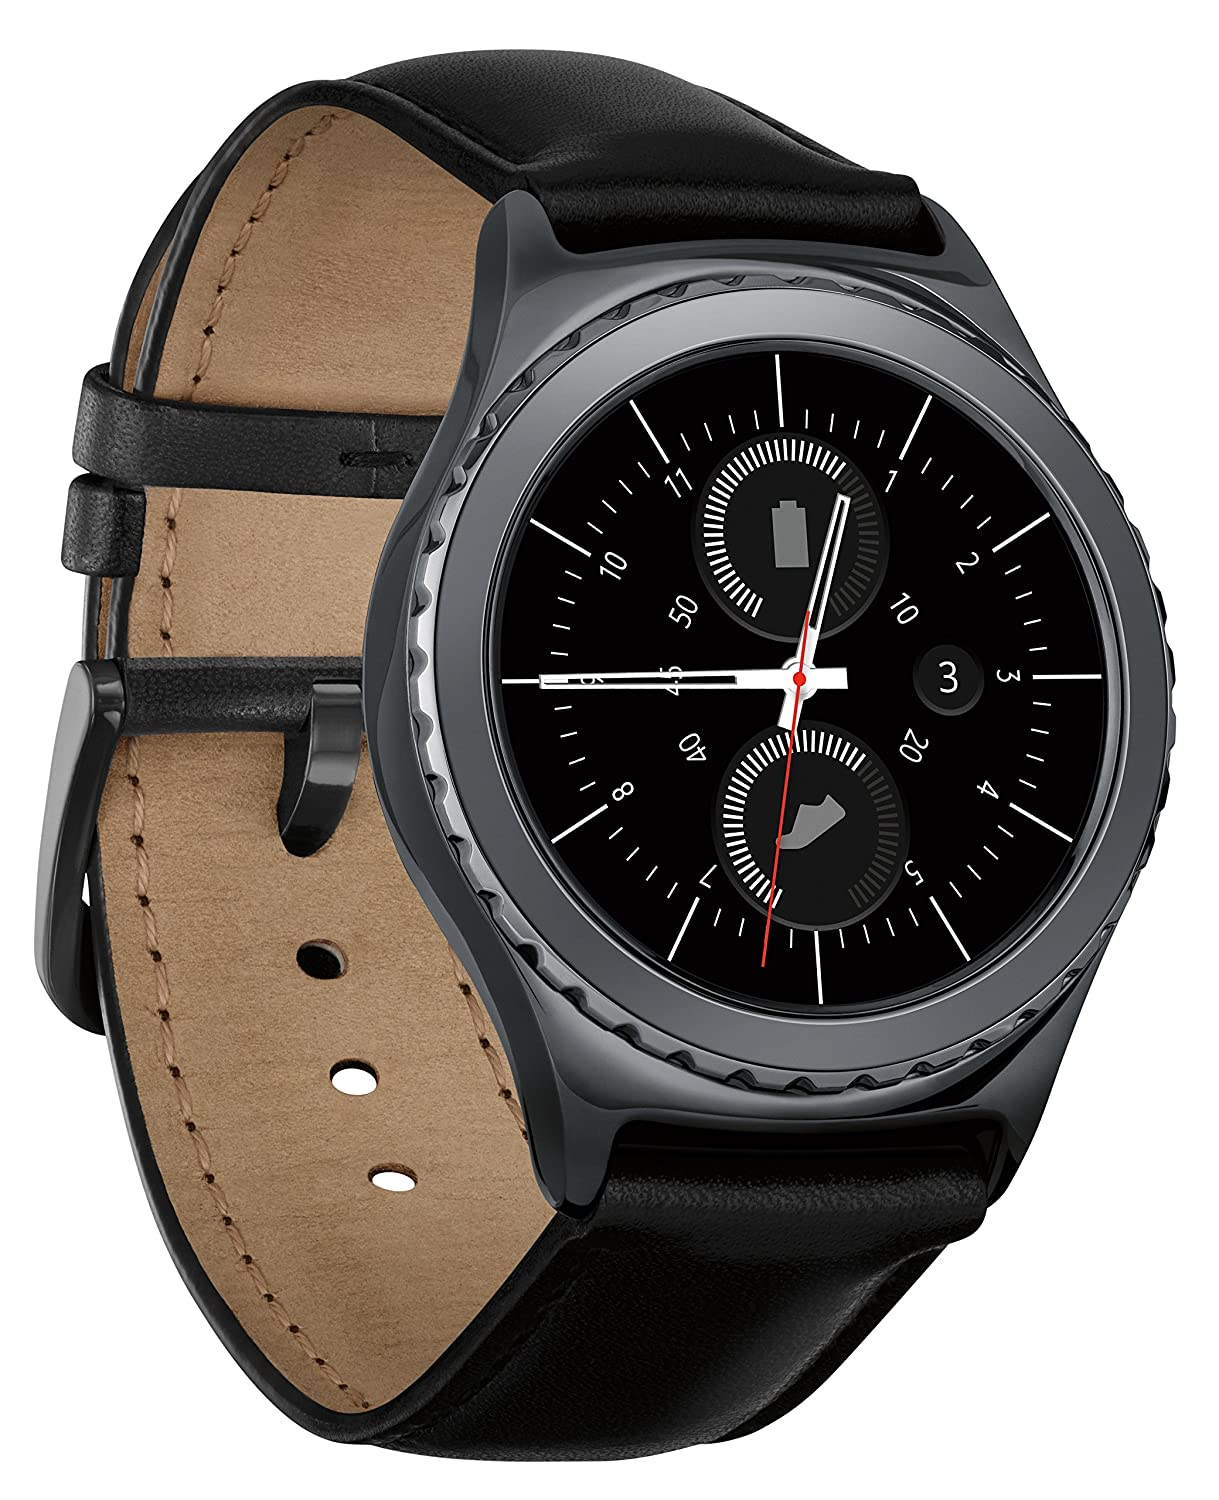 Smart Watch are they really smart